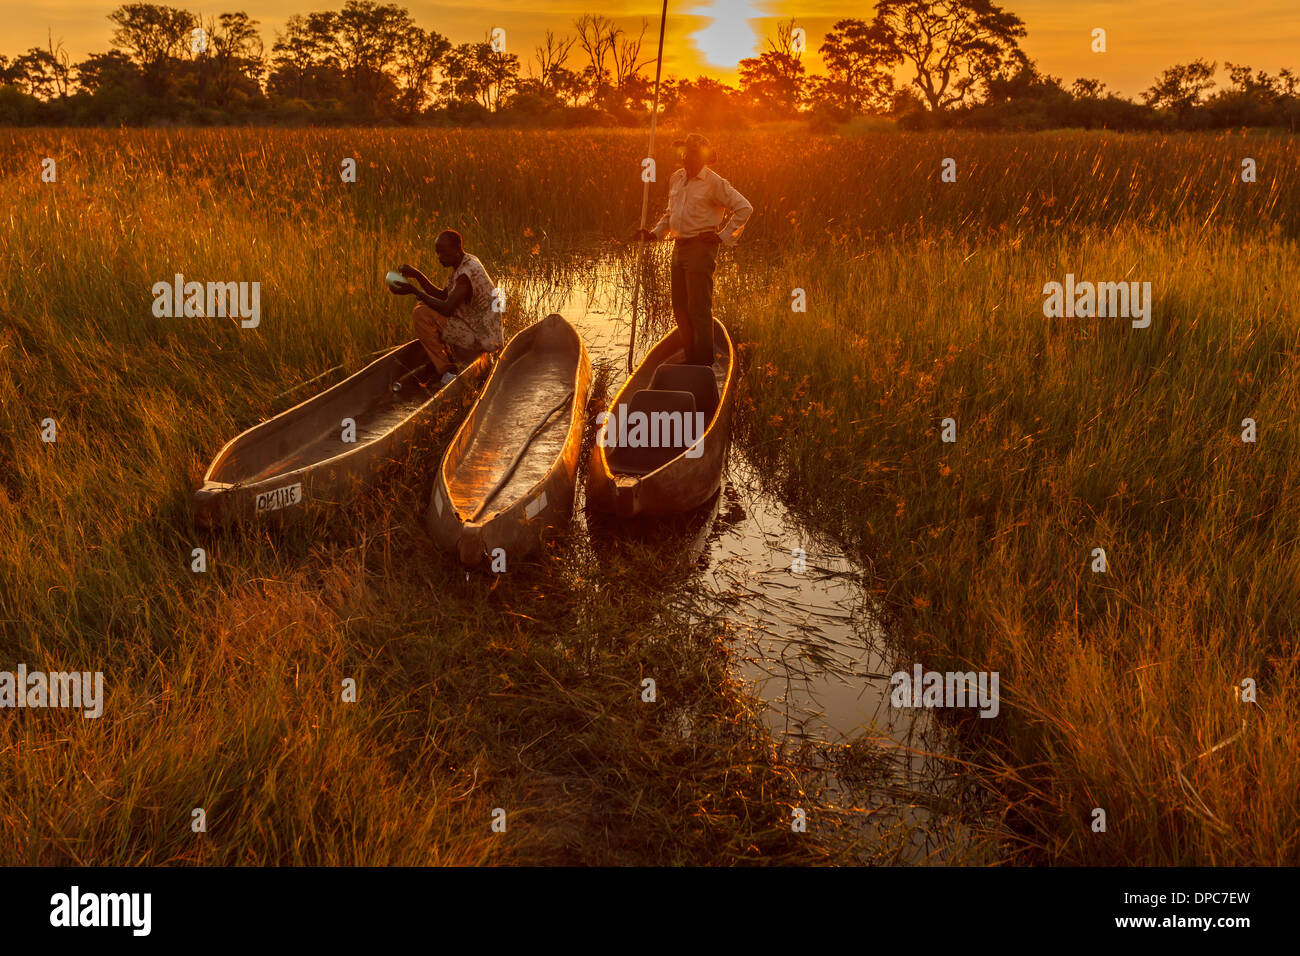 Two native men with makoro dugout canoes highlighted by orange glow of bright sun on horizon in Okavango Delta, Botswana, Africa - Stock Image